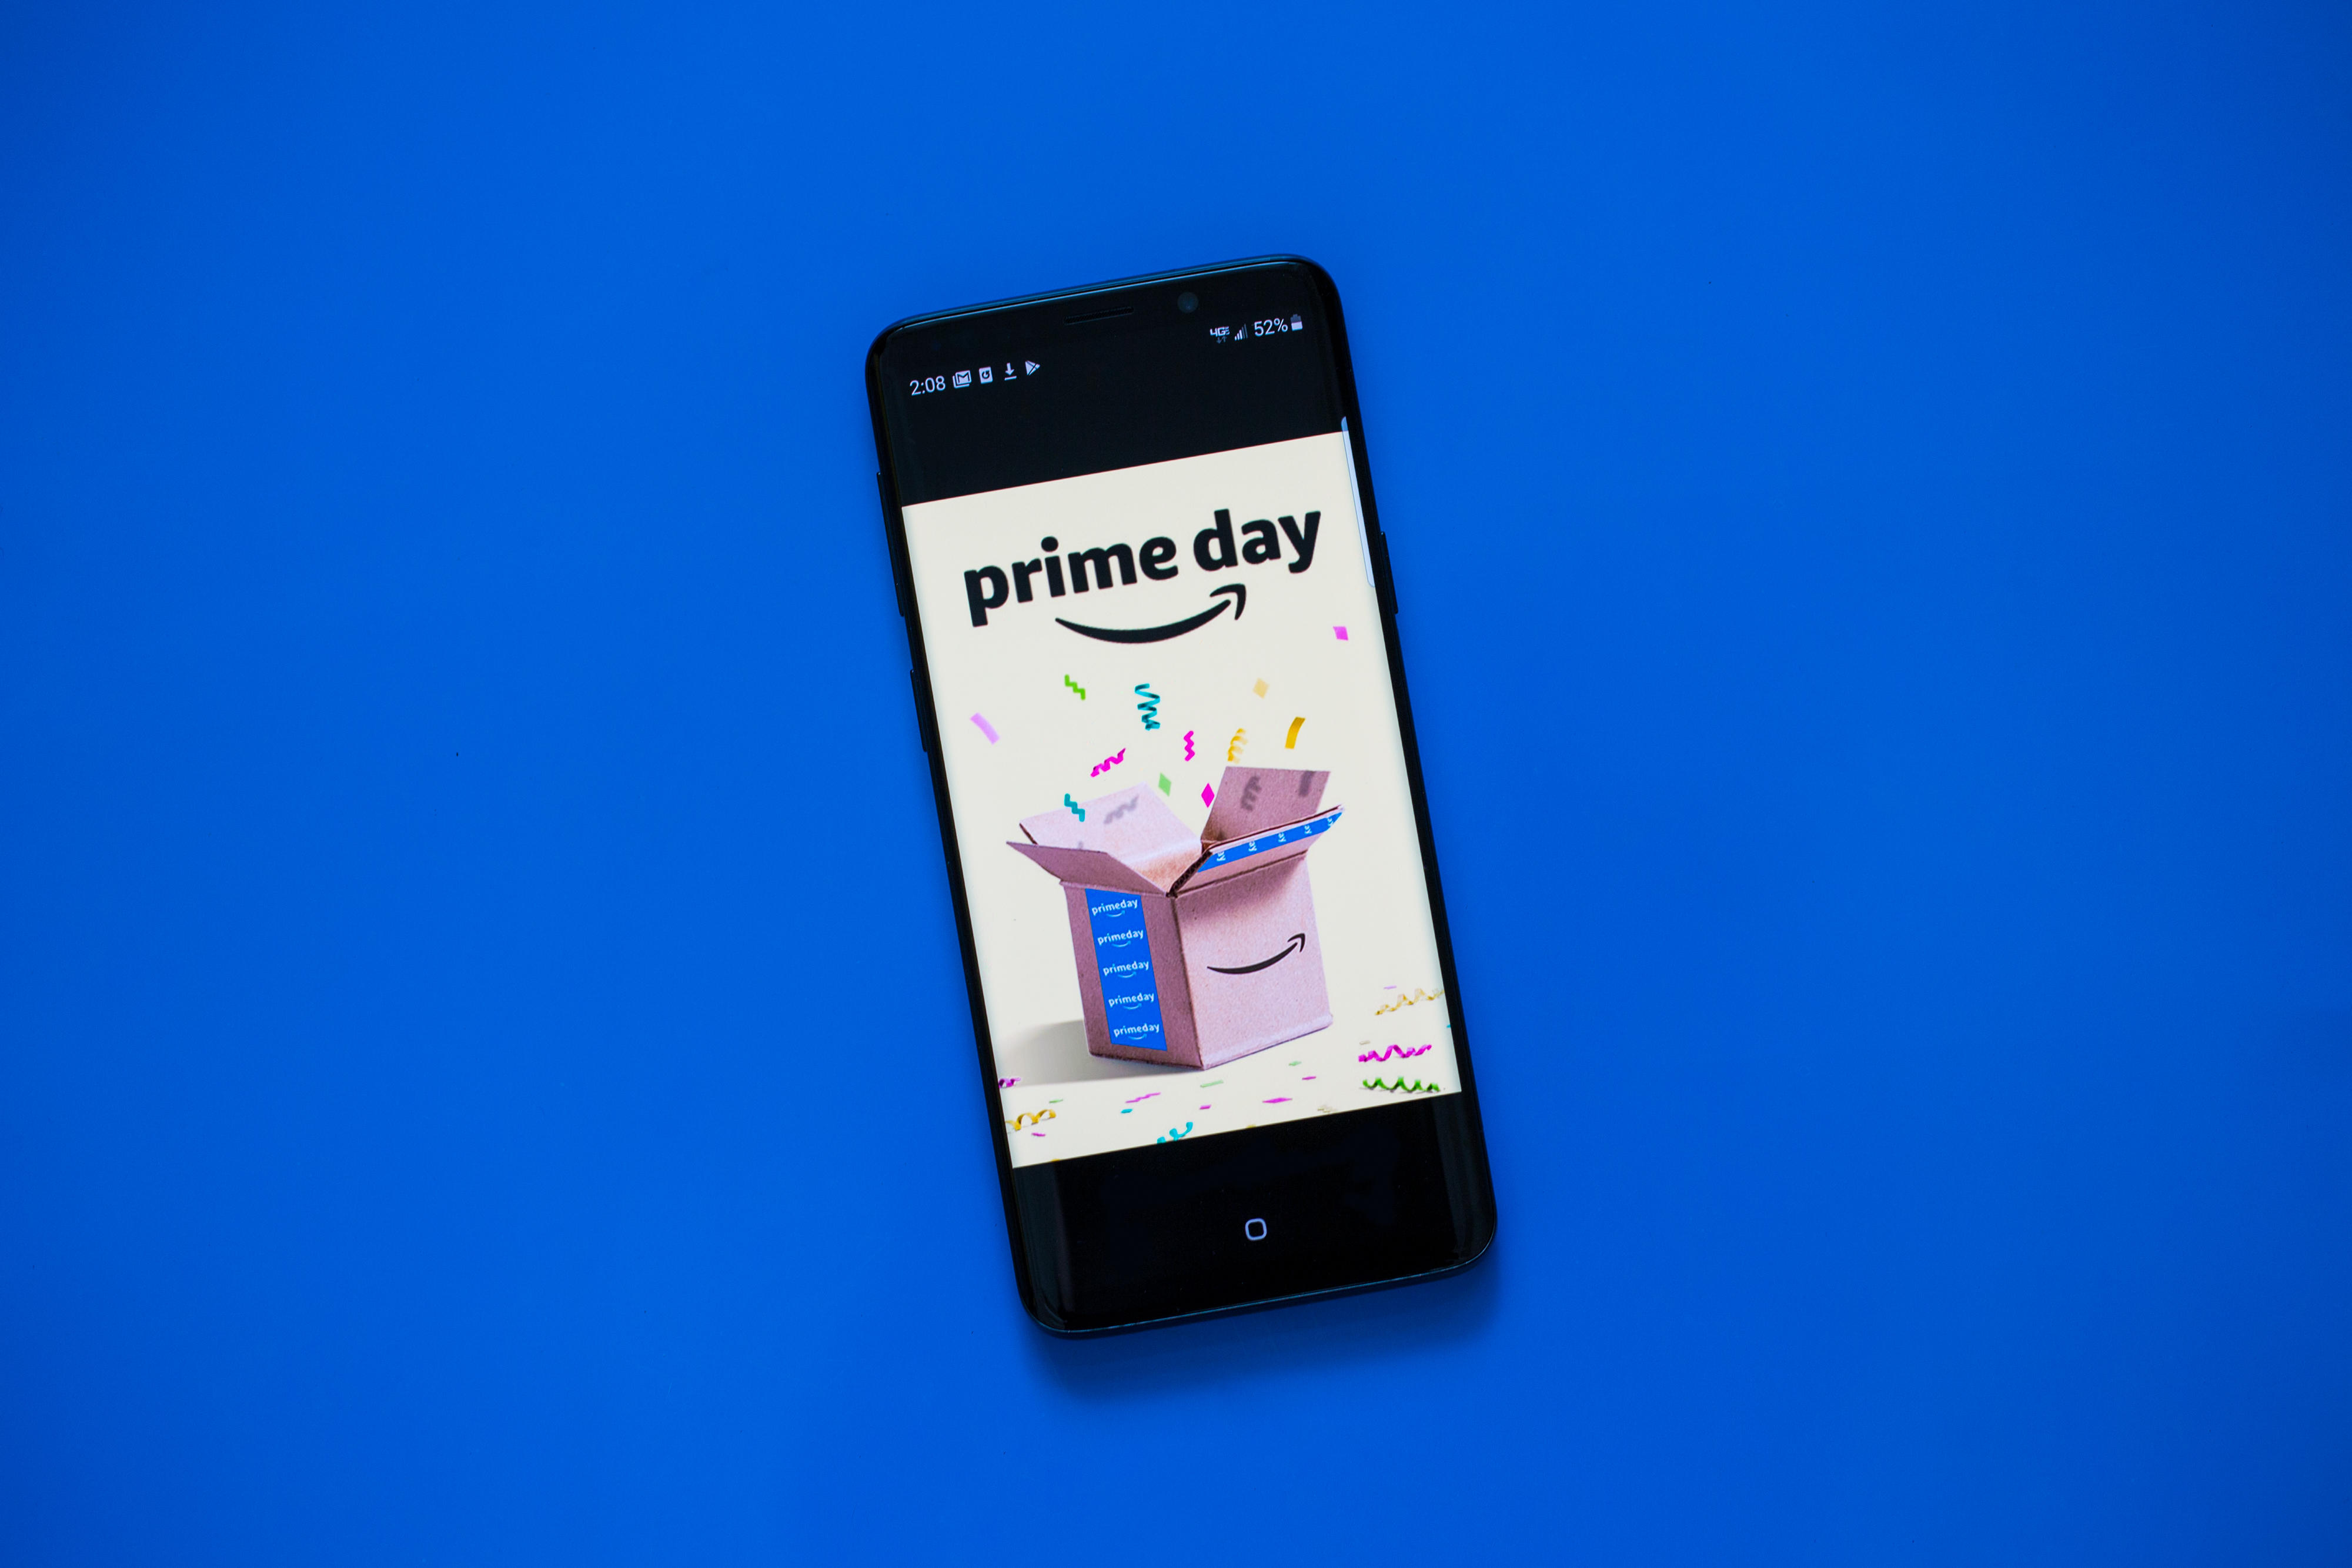 amazon-prime-day-shipping-delivery-3479